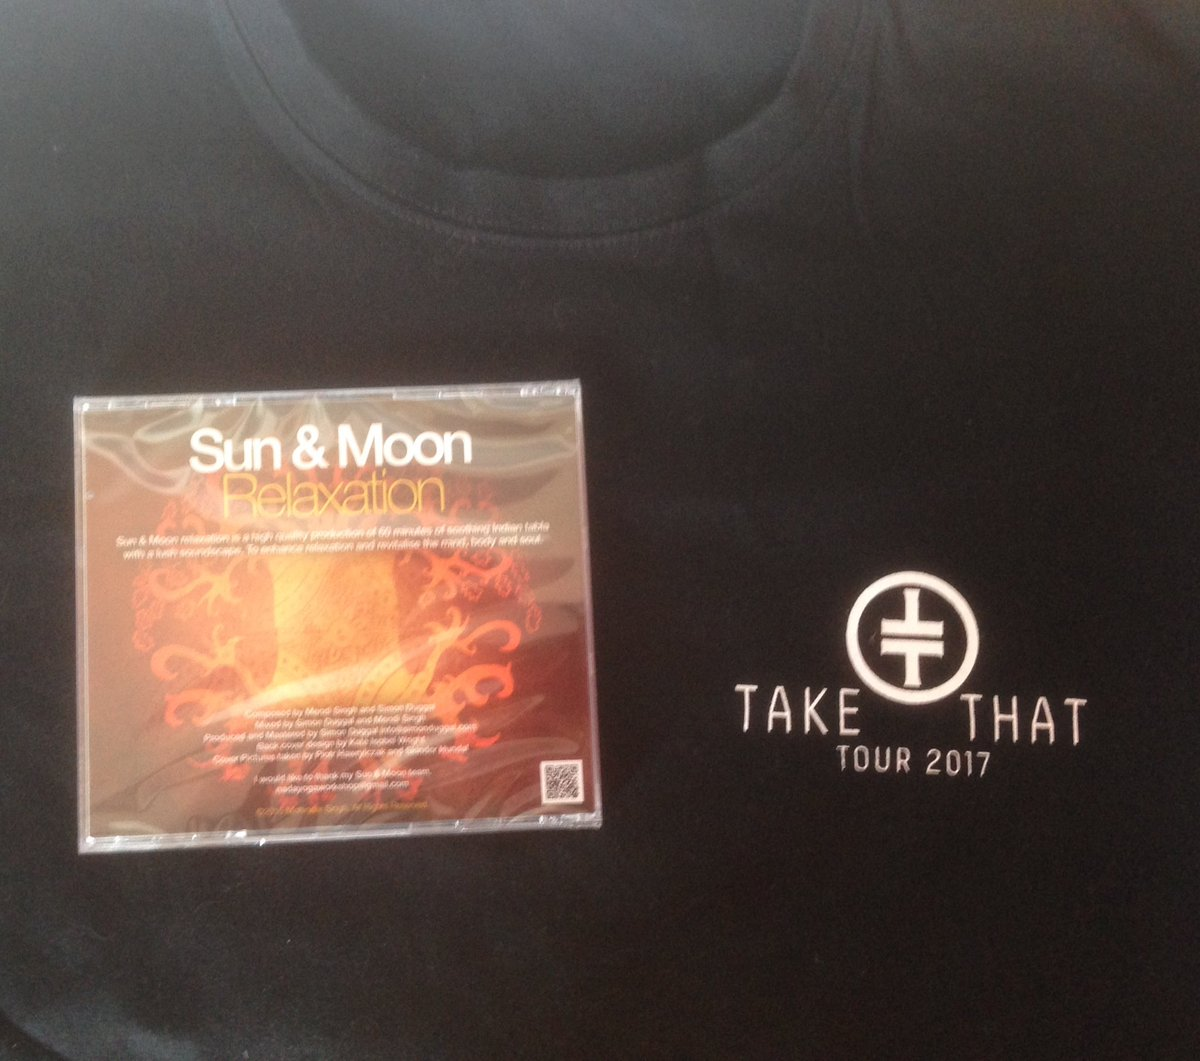 Winner will be picked tonight @ 8pm! Follow &amp; RT using #Sun&amp;Moon to win a copy of my CD &amp; exclusive @takethat crew tshirt.Good luck x<br>http://pic.twitter.com/pWnY6O77eZ